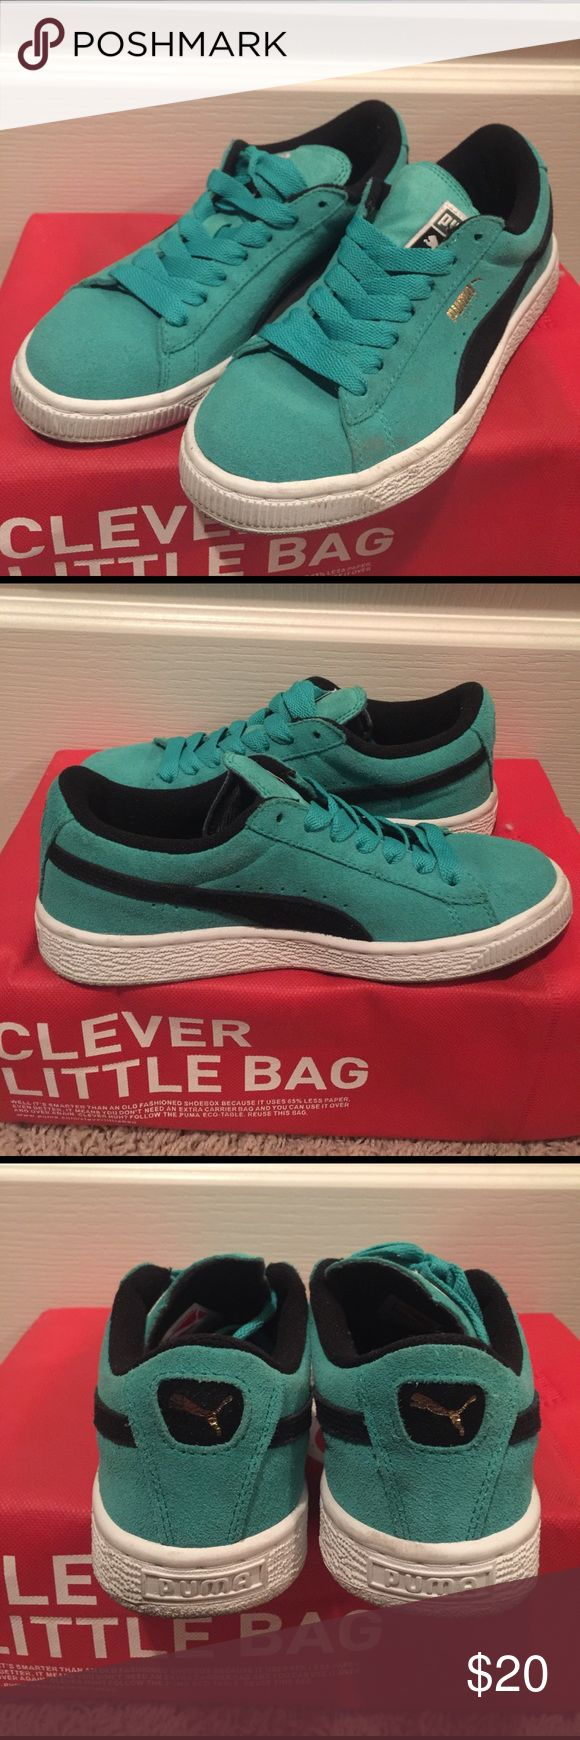 Junior Puma Suedes, Teal Used Puma Suedes, 6/10 static appeal with creases, junior size 4 Puma Shoes Sneakers